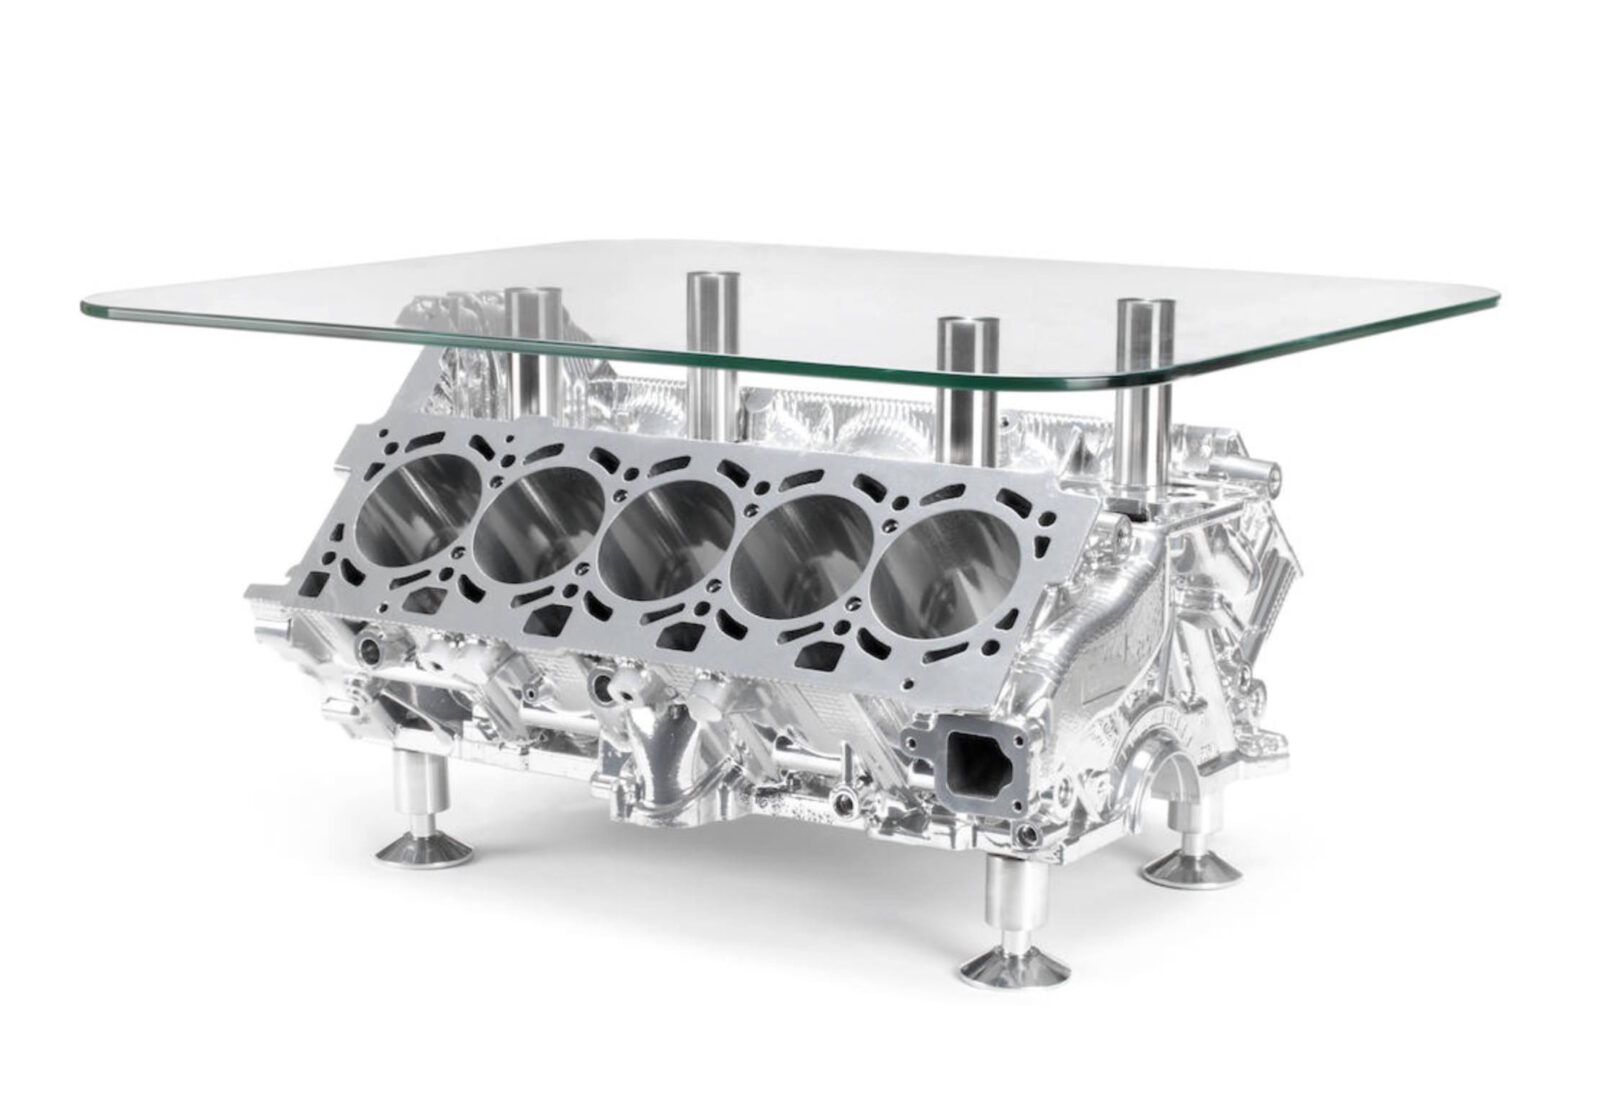 Lamborghini V10 Engine Coffee Table 1600x1103 - Lamborghini V10 Engine Coffee Table